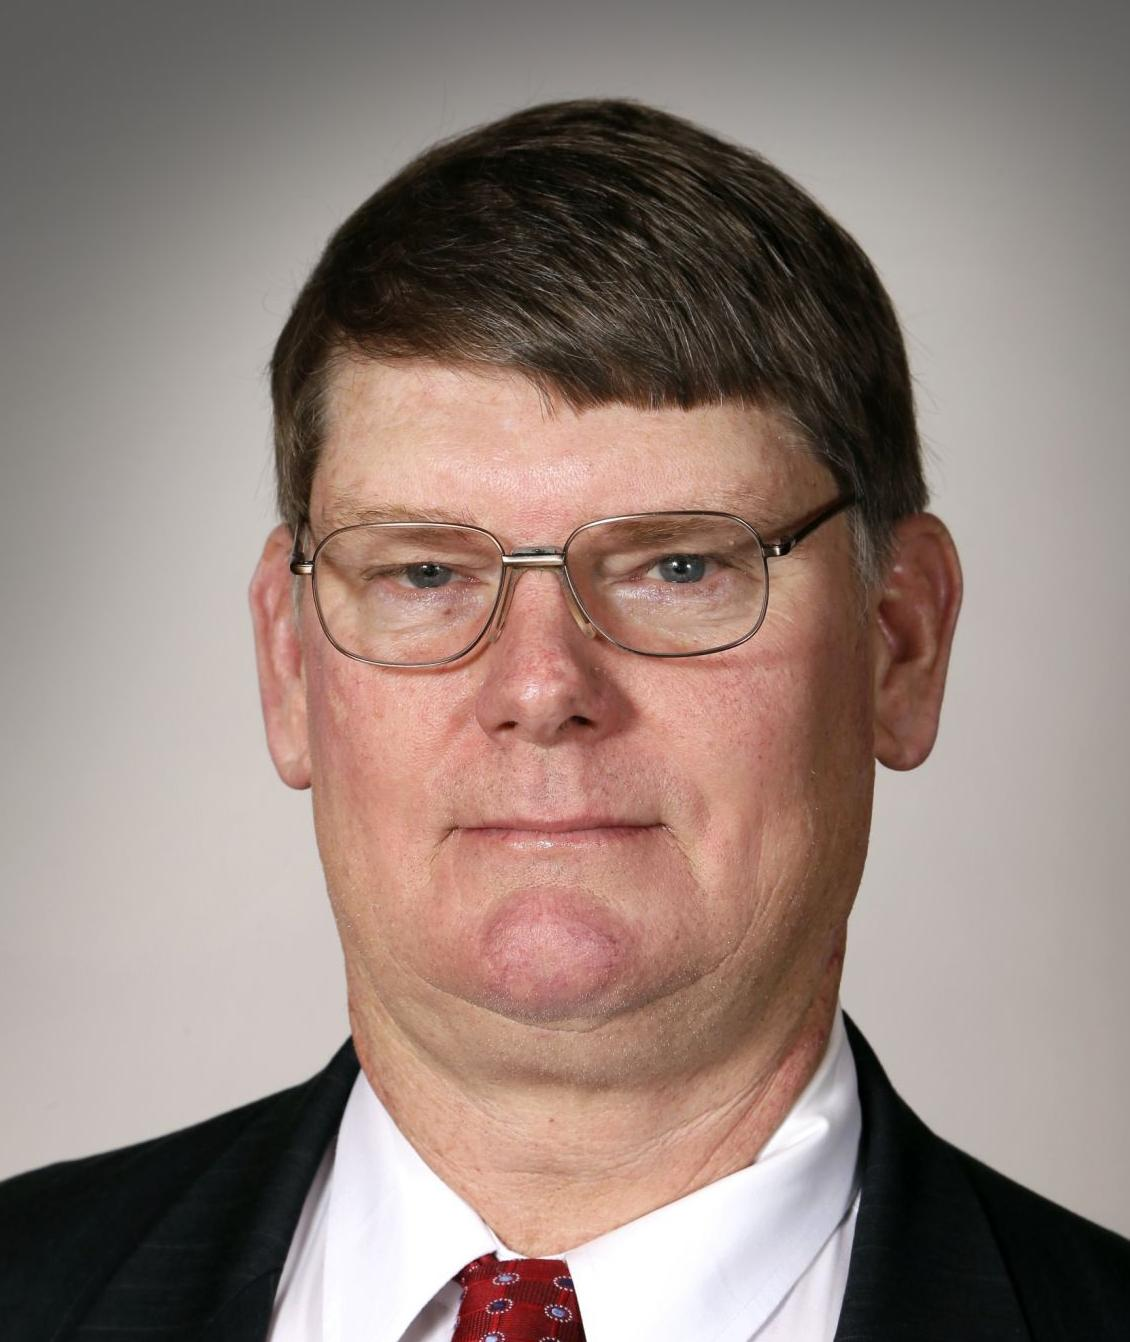 Iowa state Rep. Ross Paustian